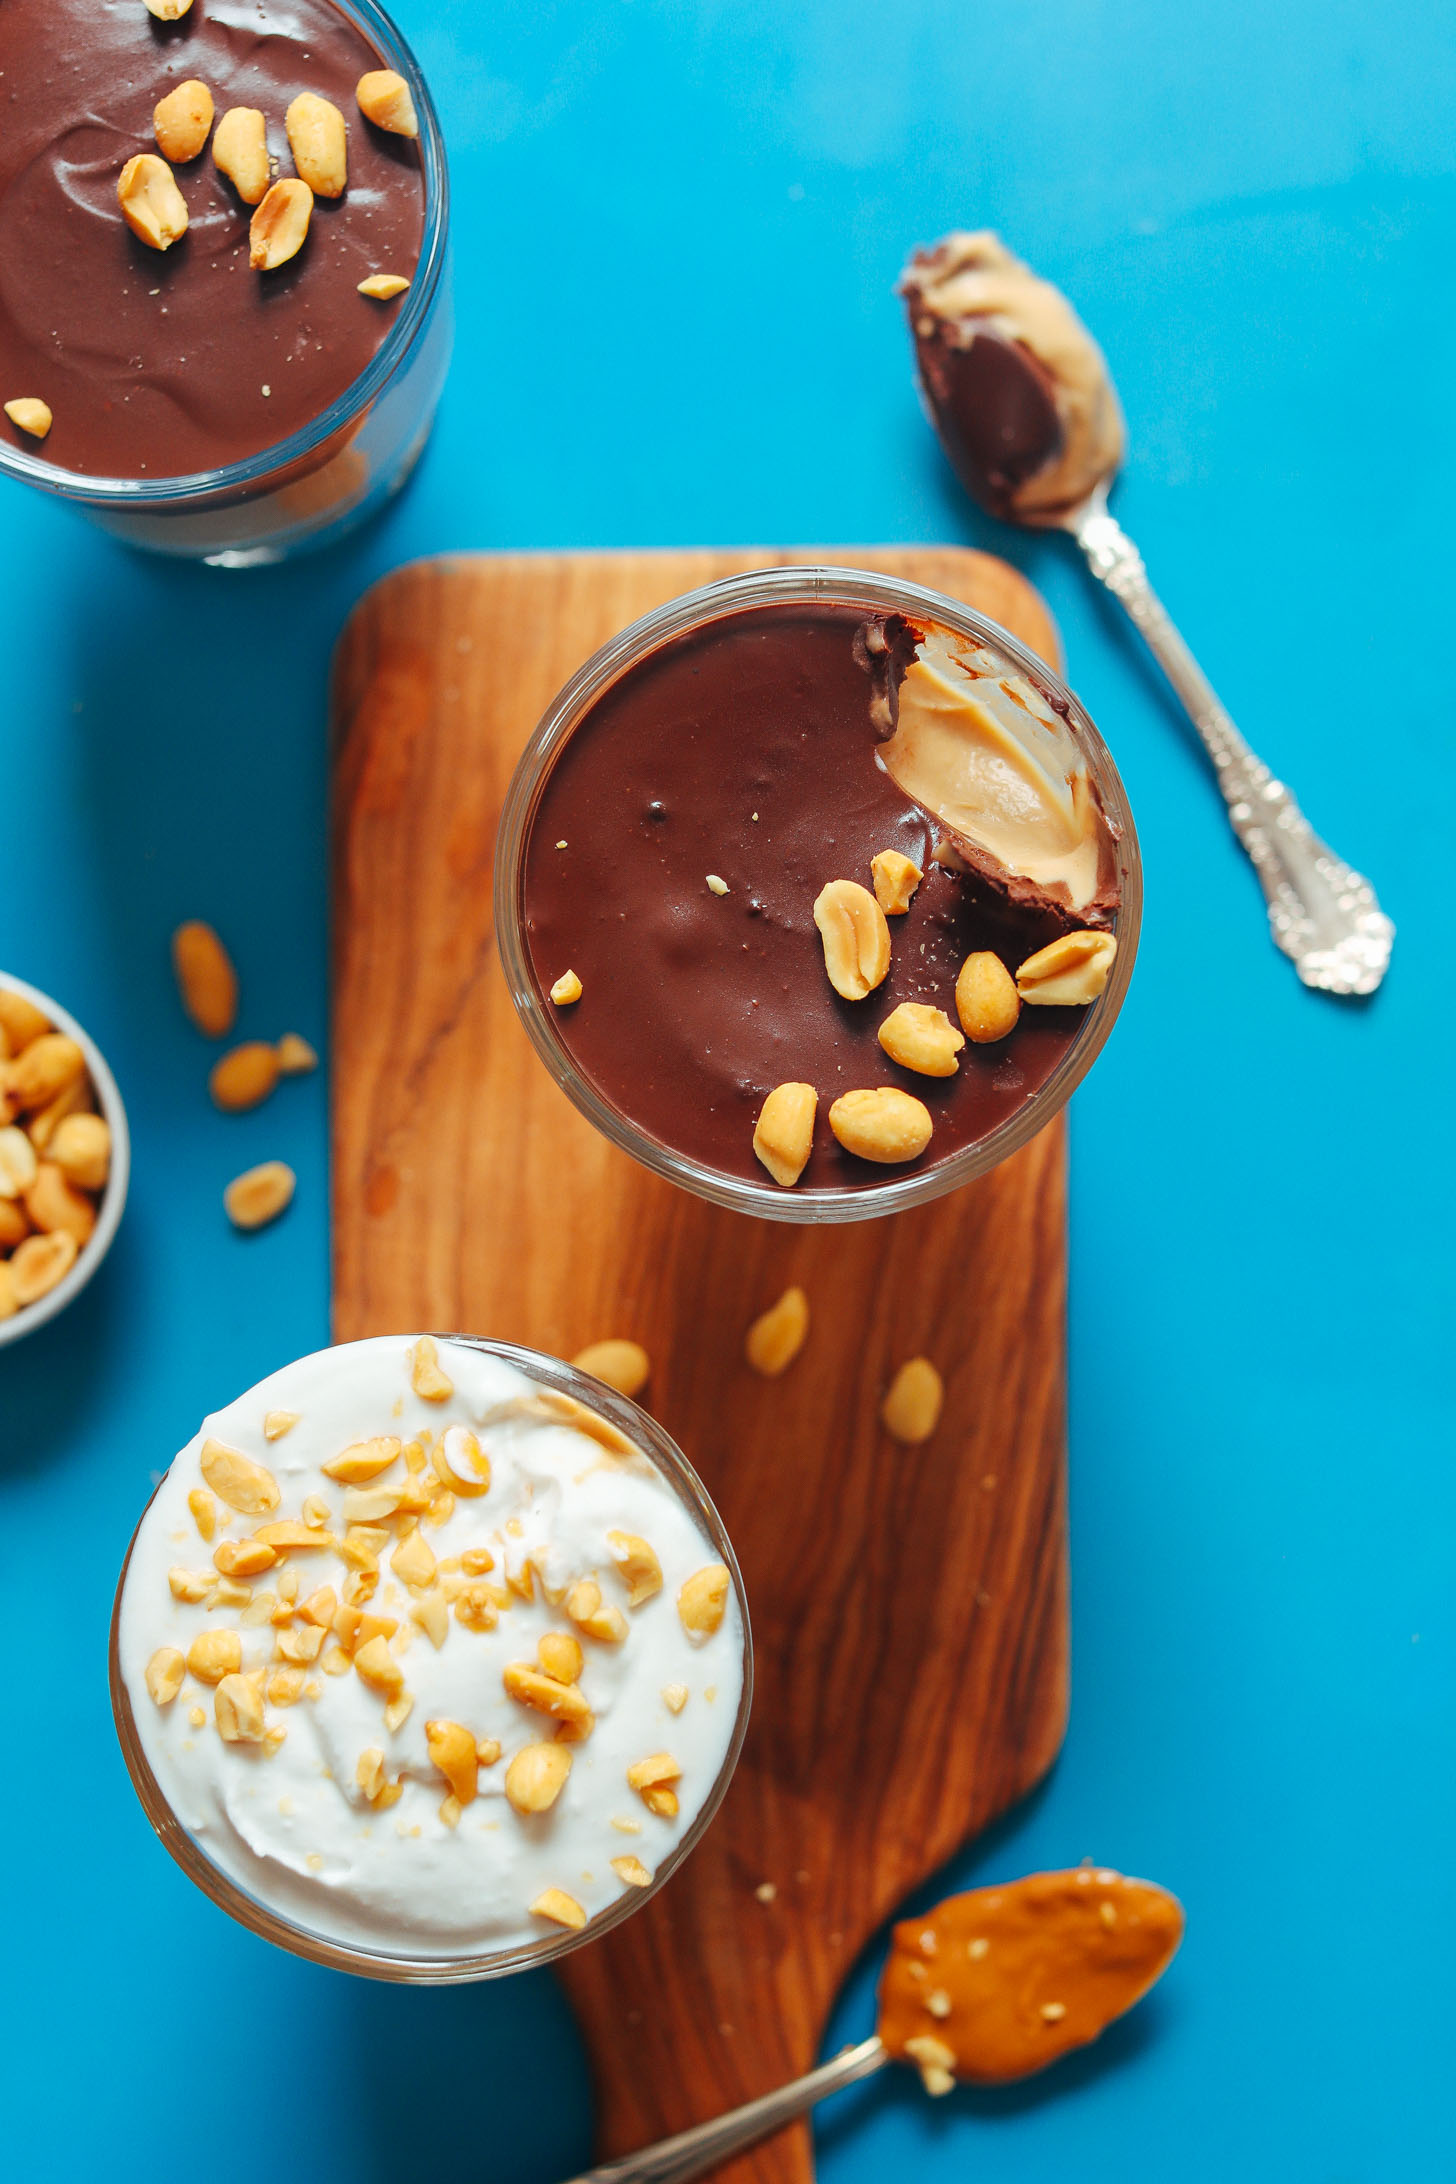 Glasses of Vegan Peanut Butter Pudding topped with chocolate ganache or coconut whip